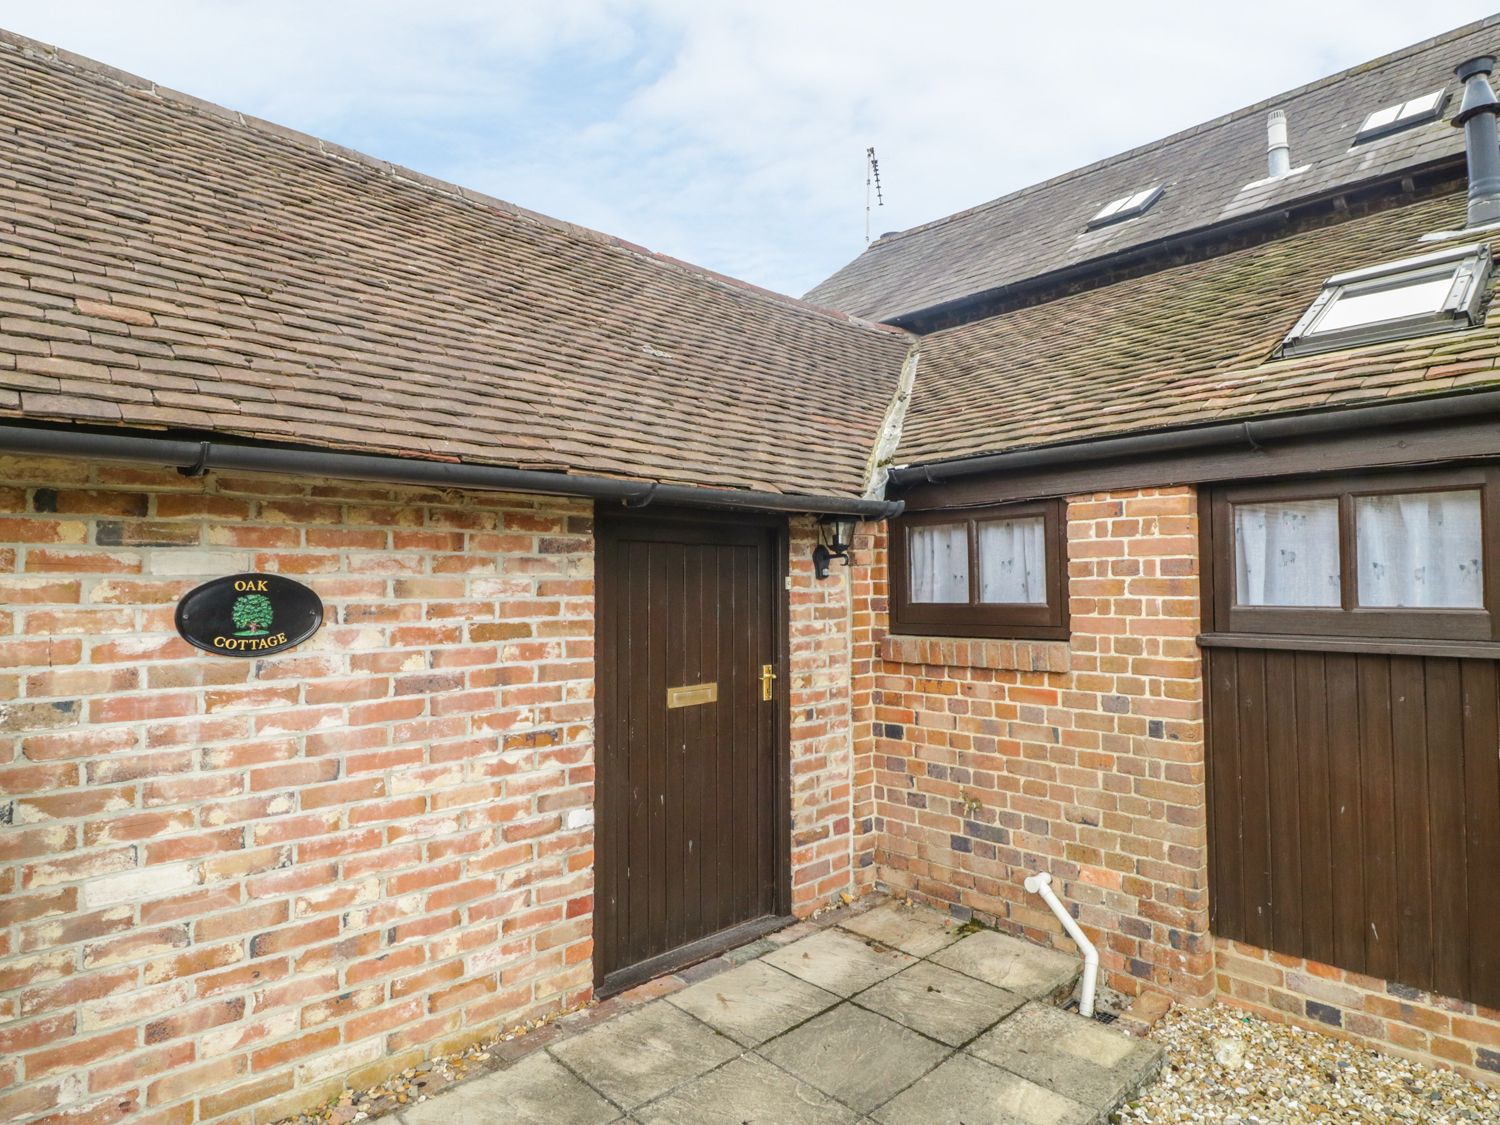 Oak Cottage - Dorset - 955591 - photo 1